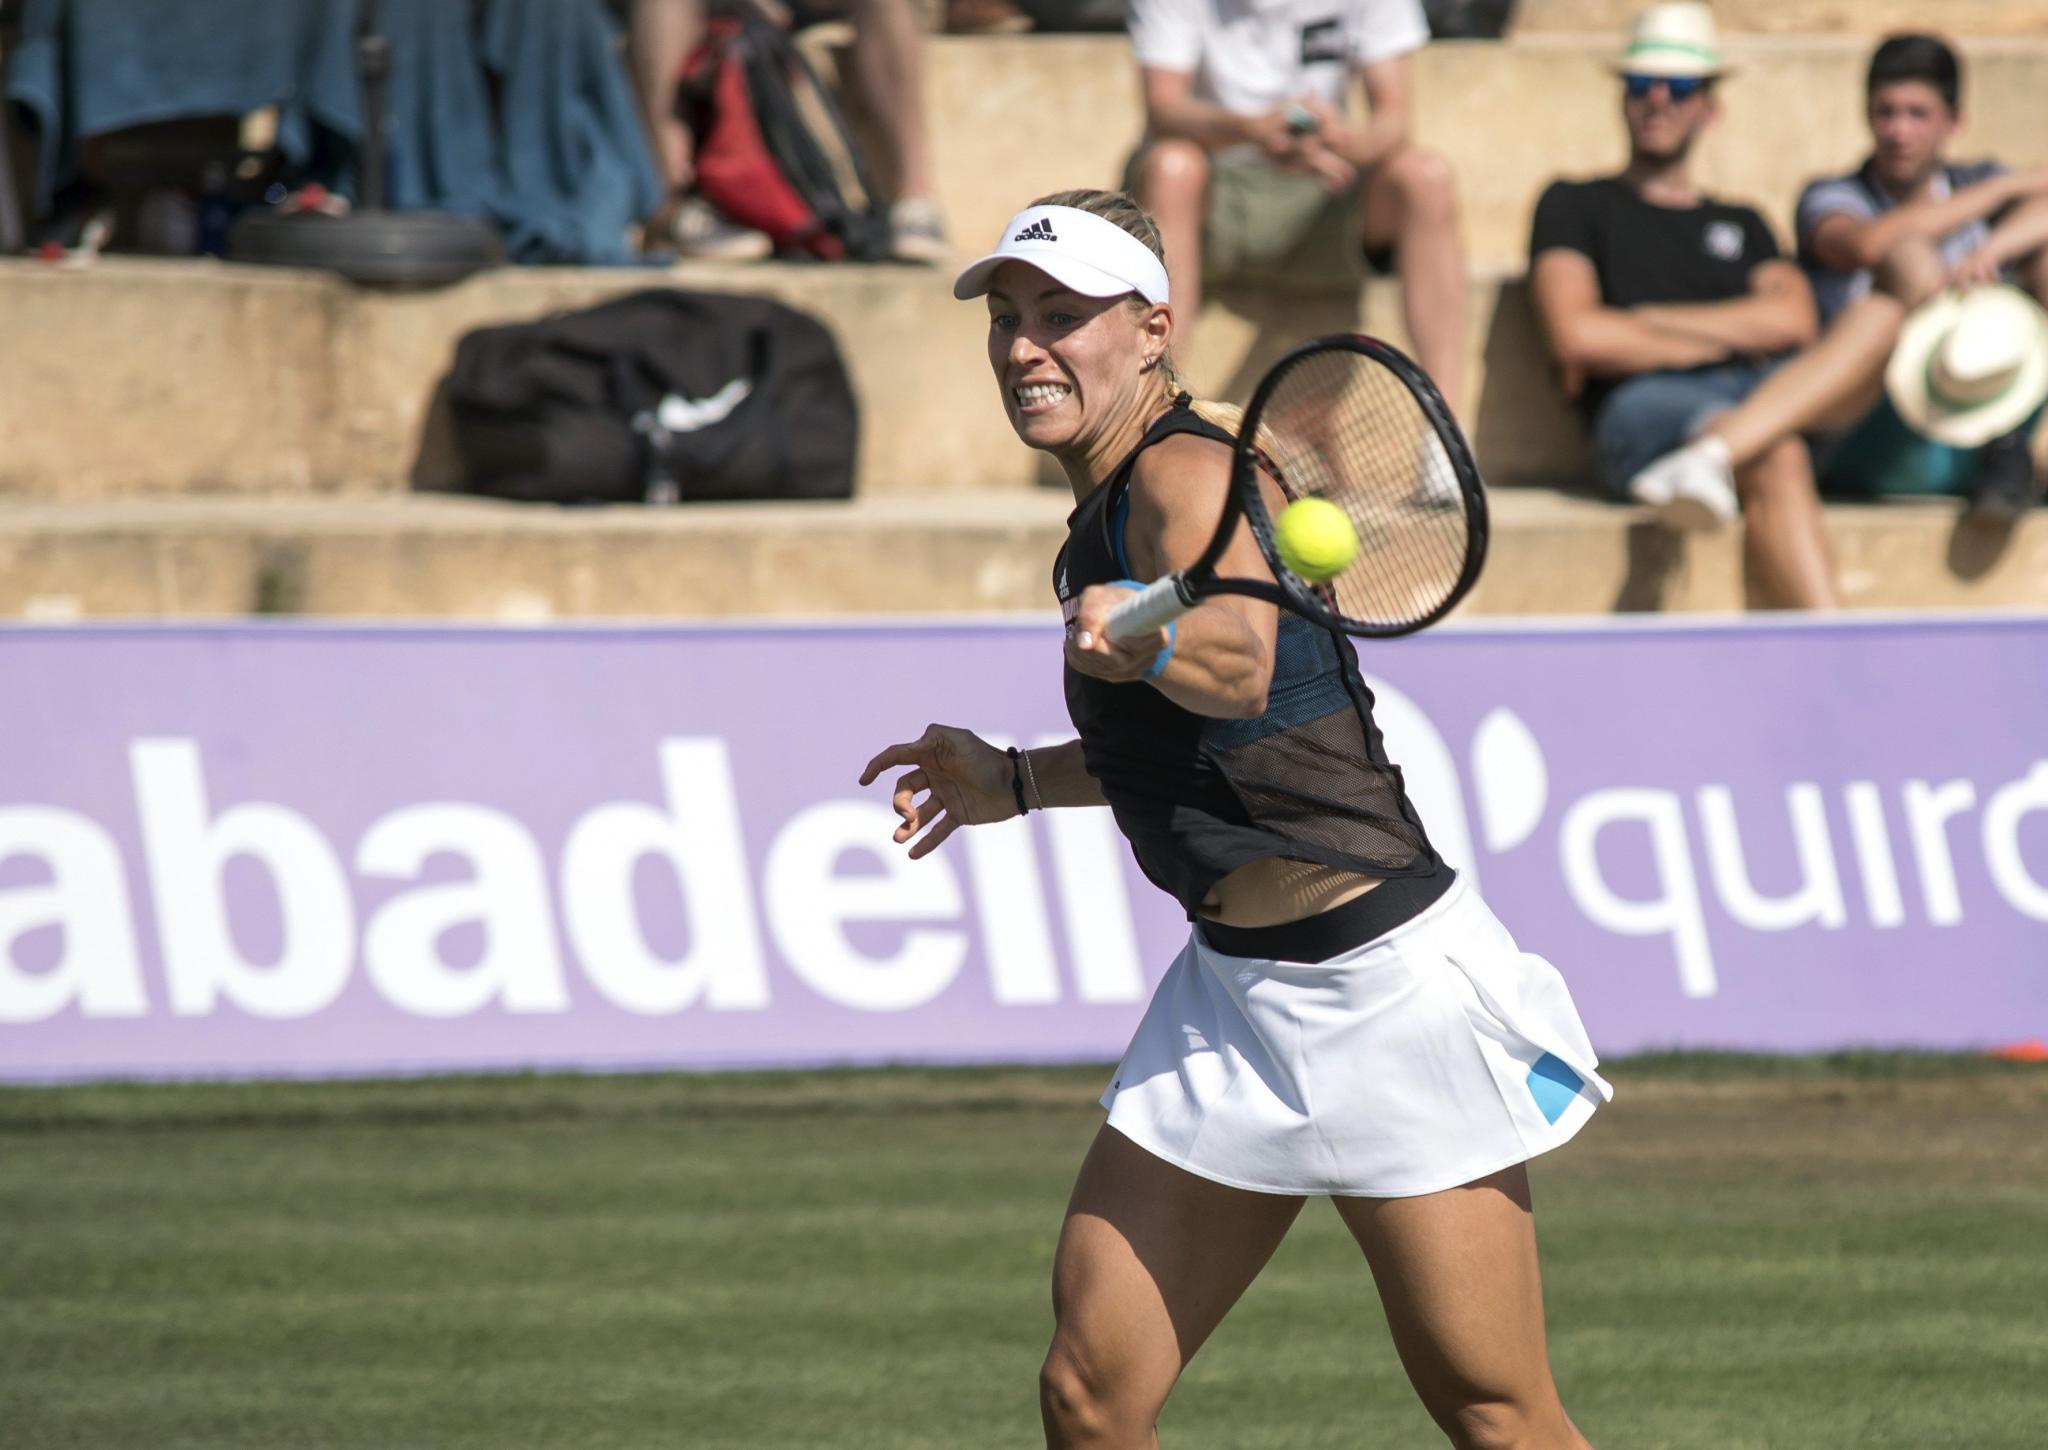 María Sharápova at the WTA Mallorca Open in Santa Ponsa